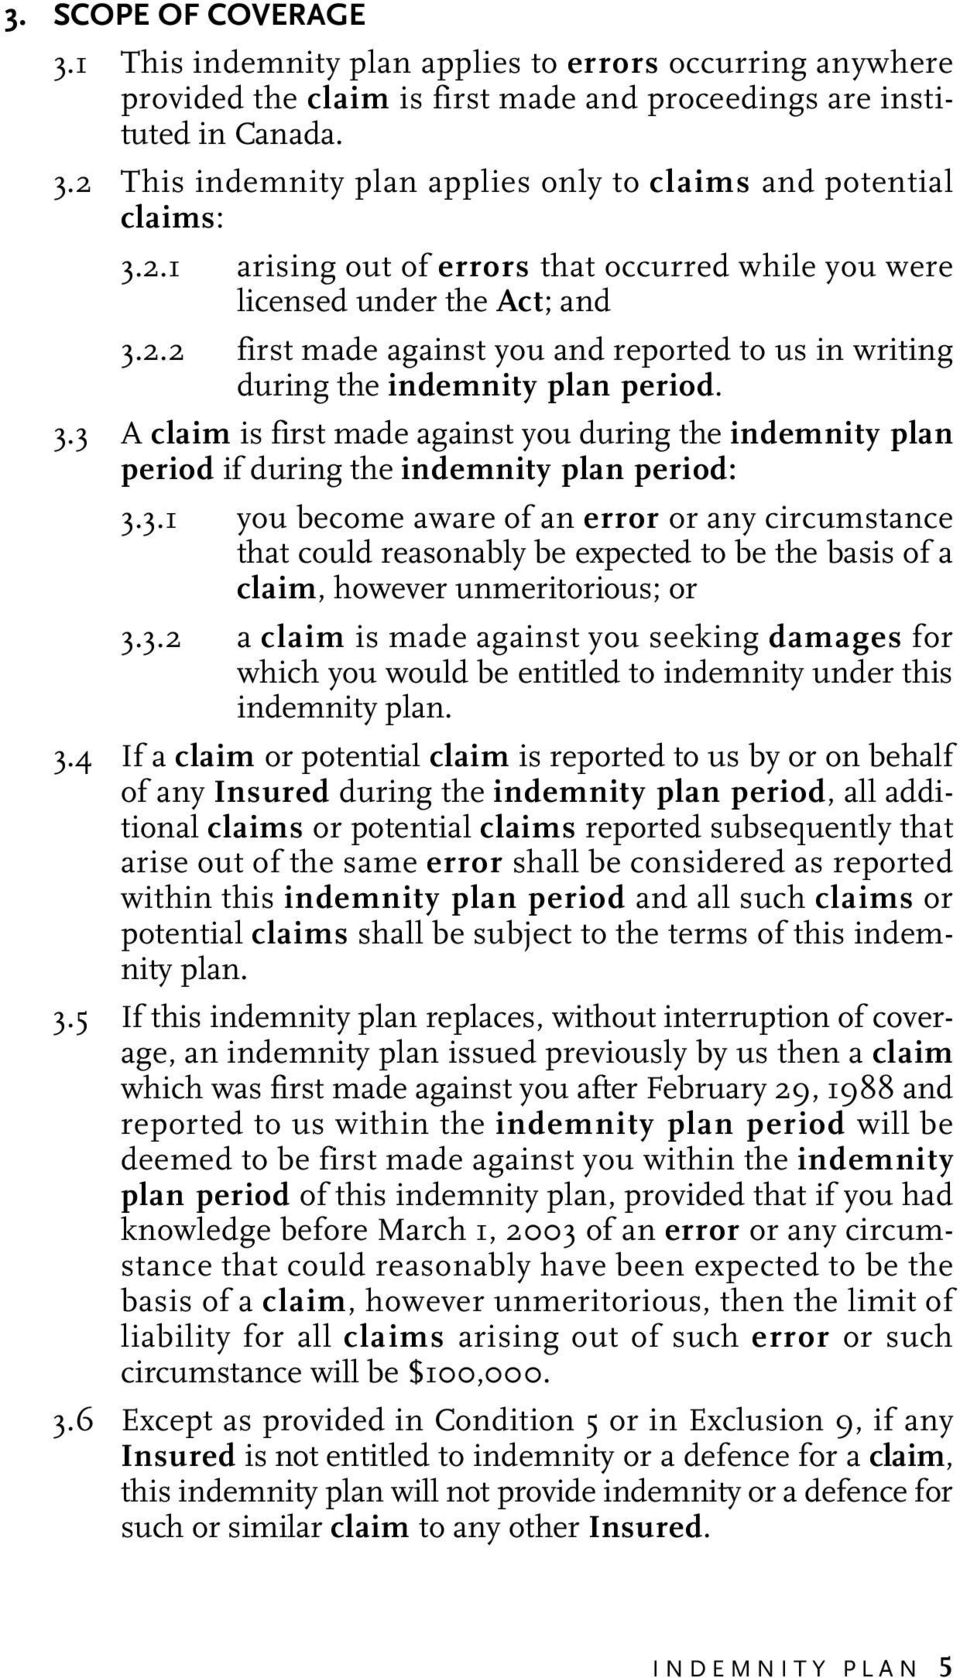 3.1 you become aware of an error or any circumstance that could reasonably be expected to be the basis of a claim, however unmeritorious; or 3.3.2 a claim is made against you seeking damages for which you would be entitled to indemnity under this indemnity plan.